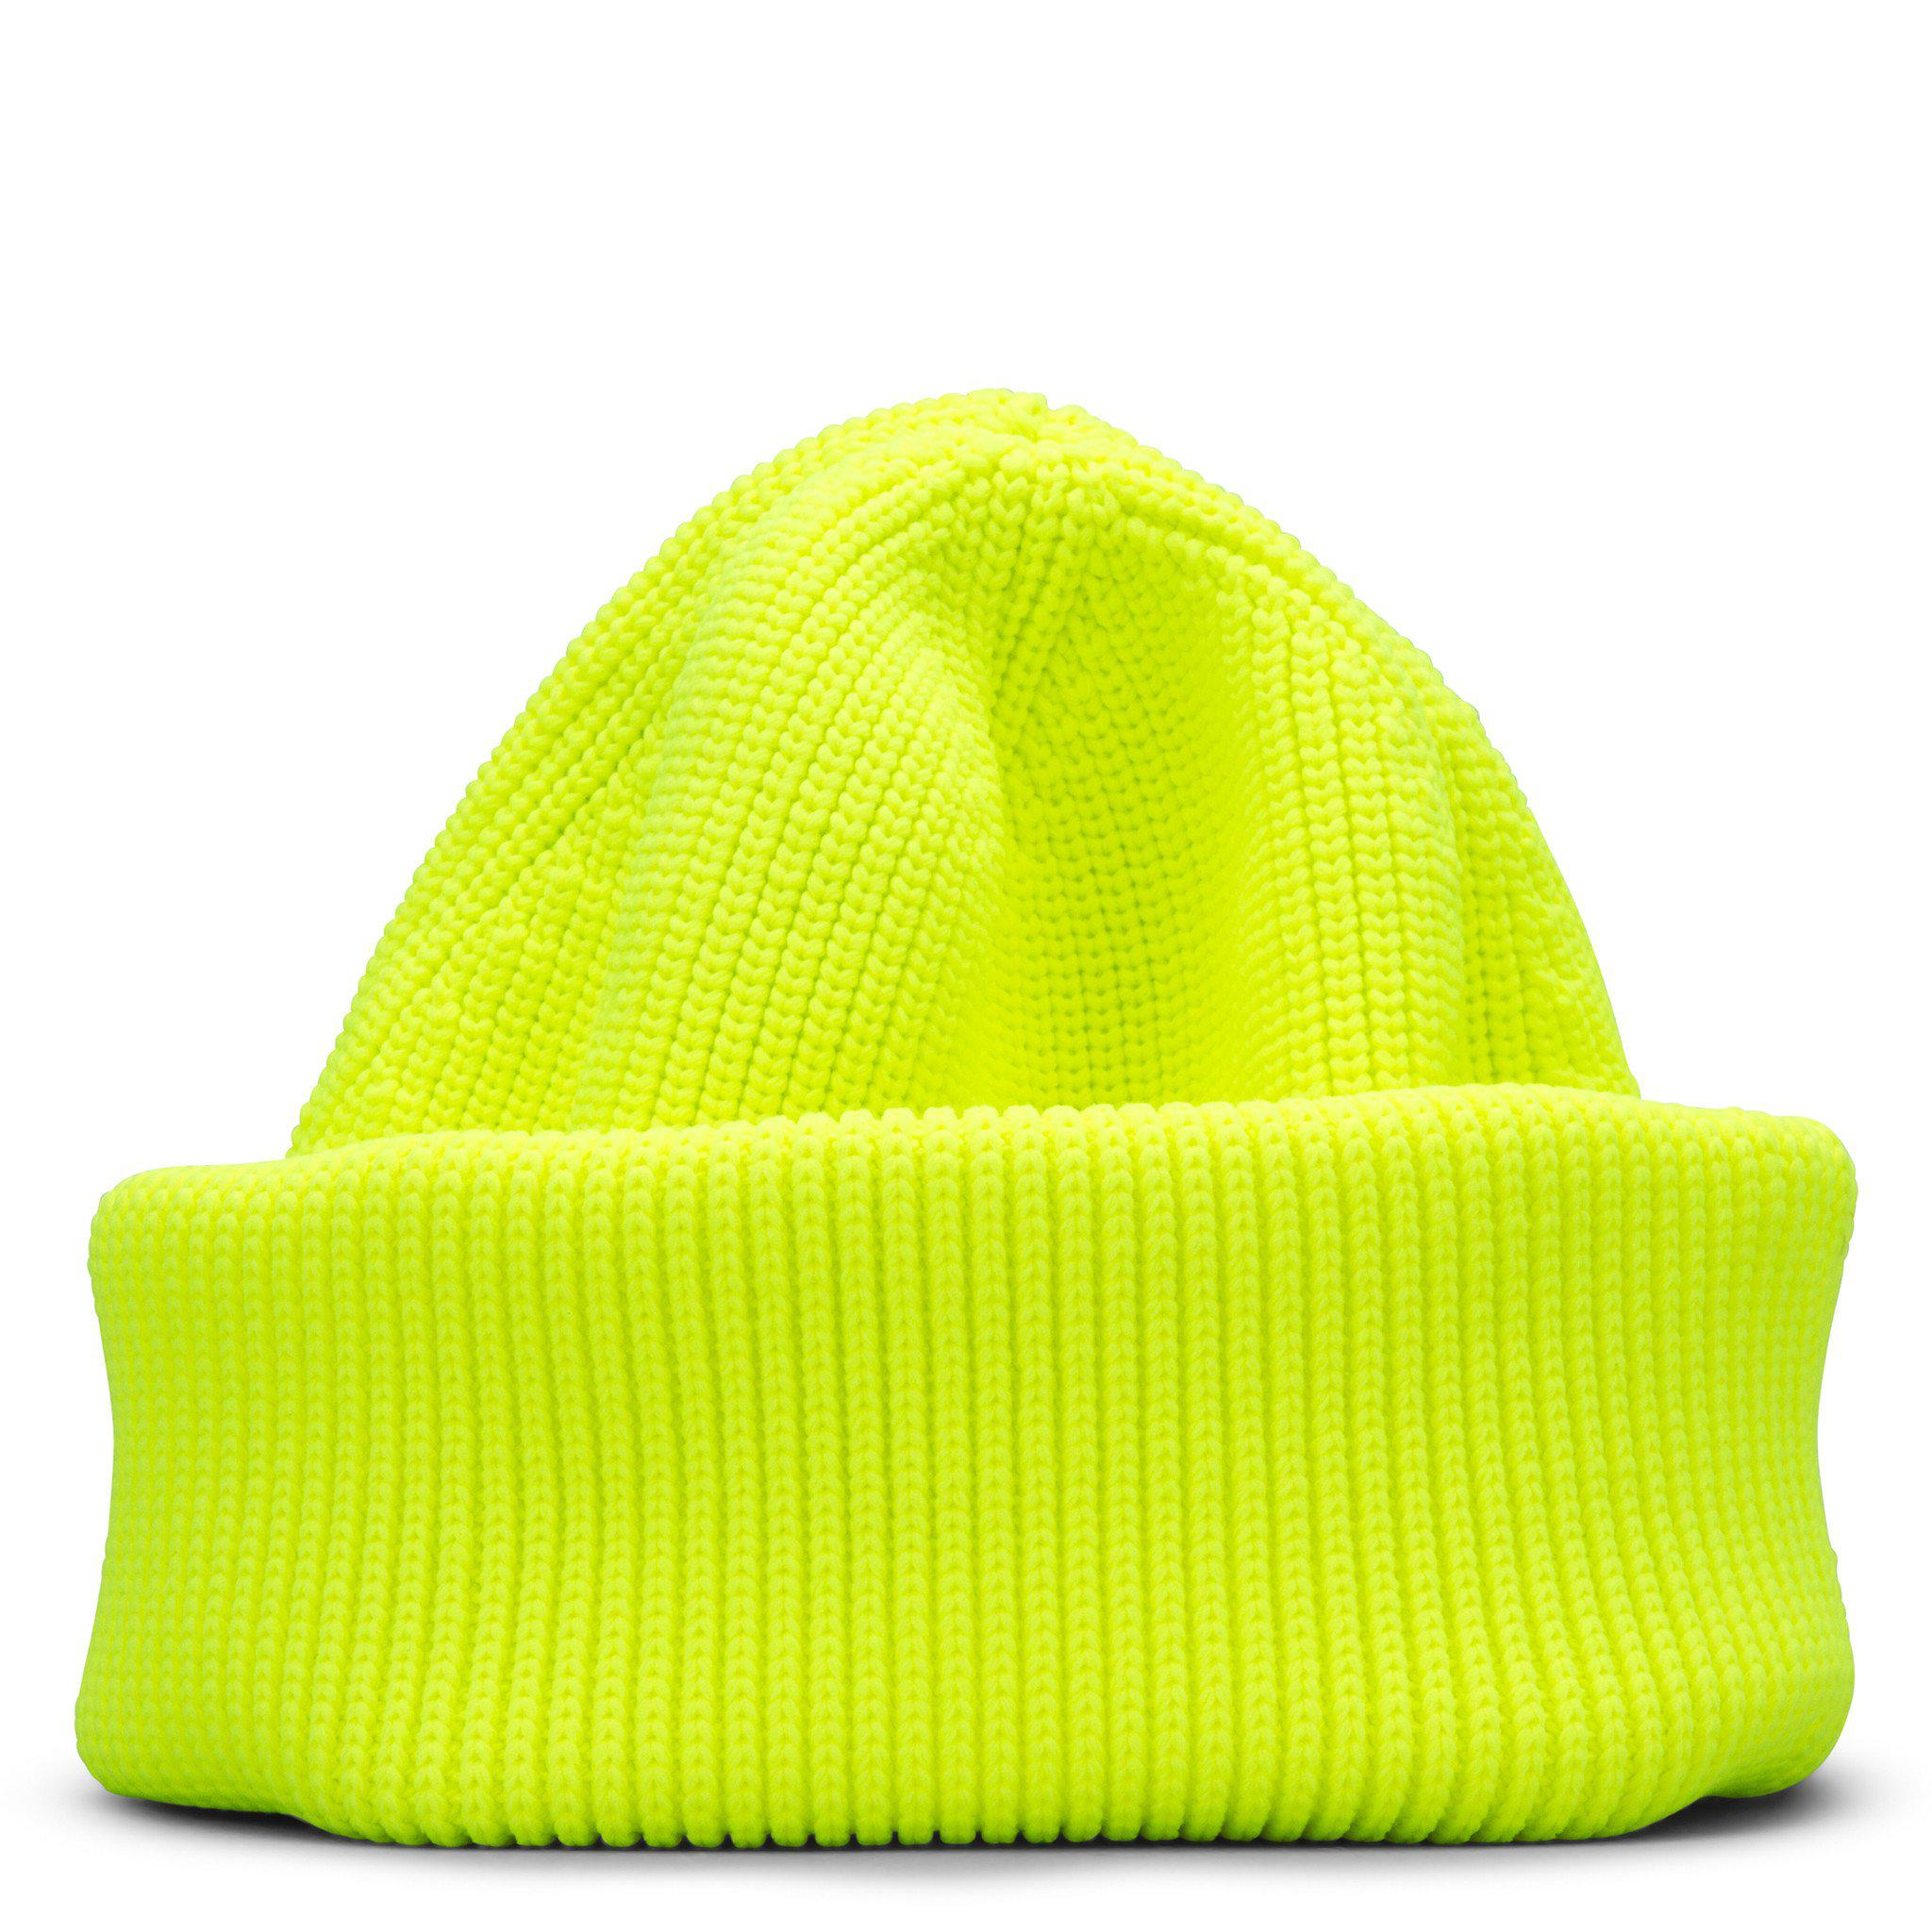 Lyst - Alexander Wang Fishermans Beanie in Yellow for Men a60b56fd106f